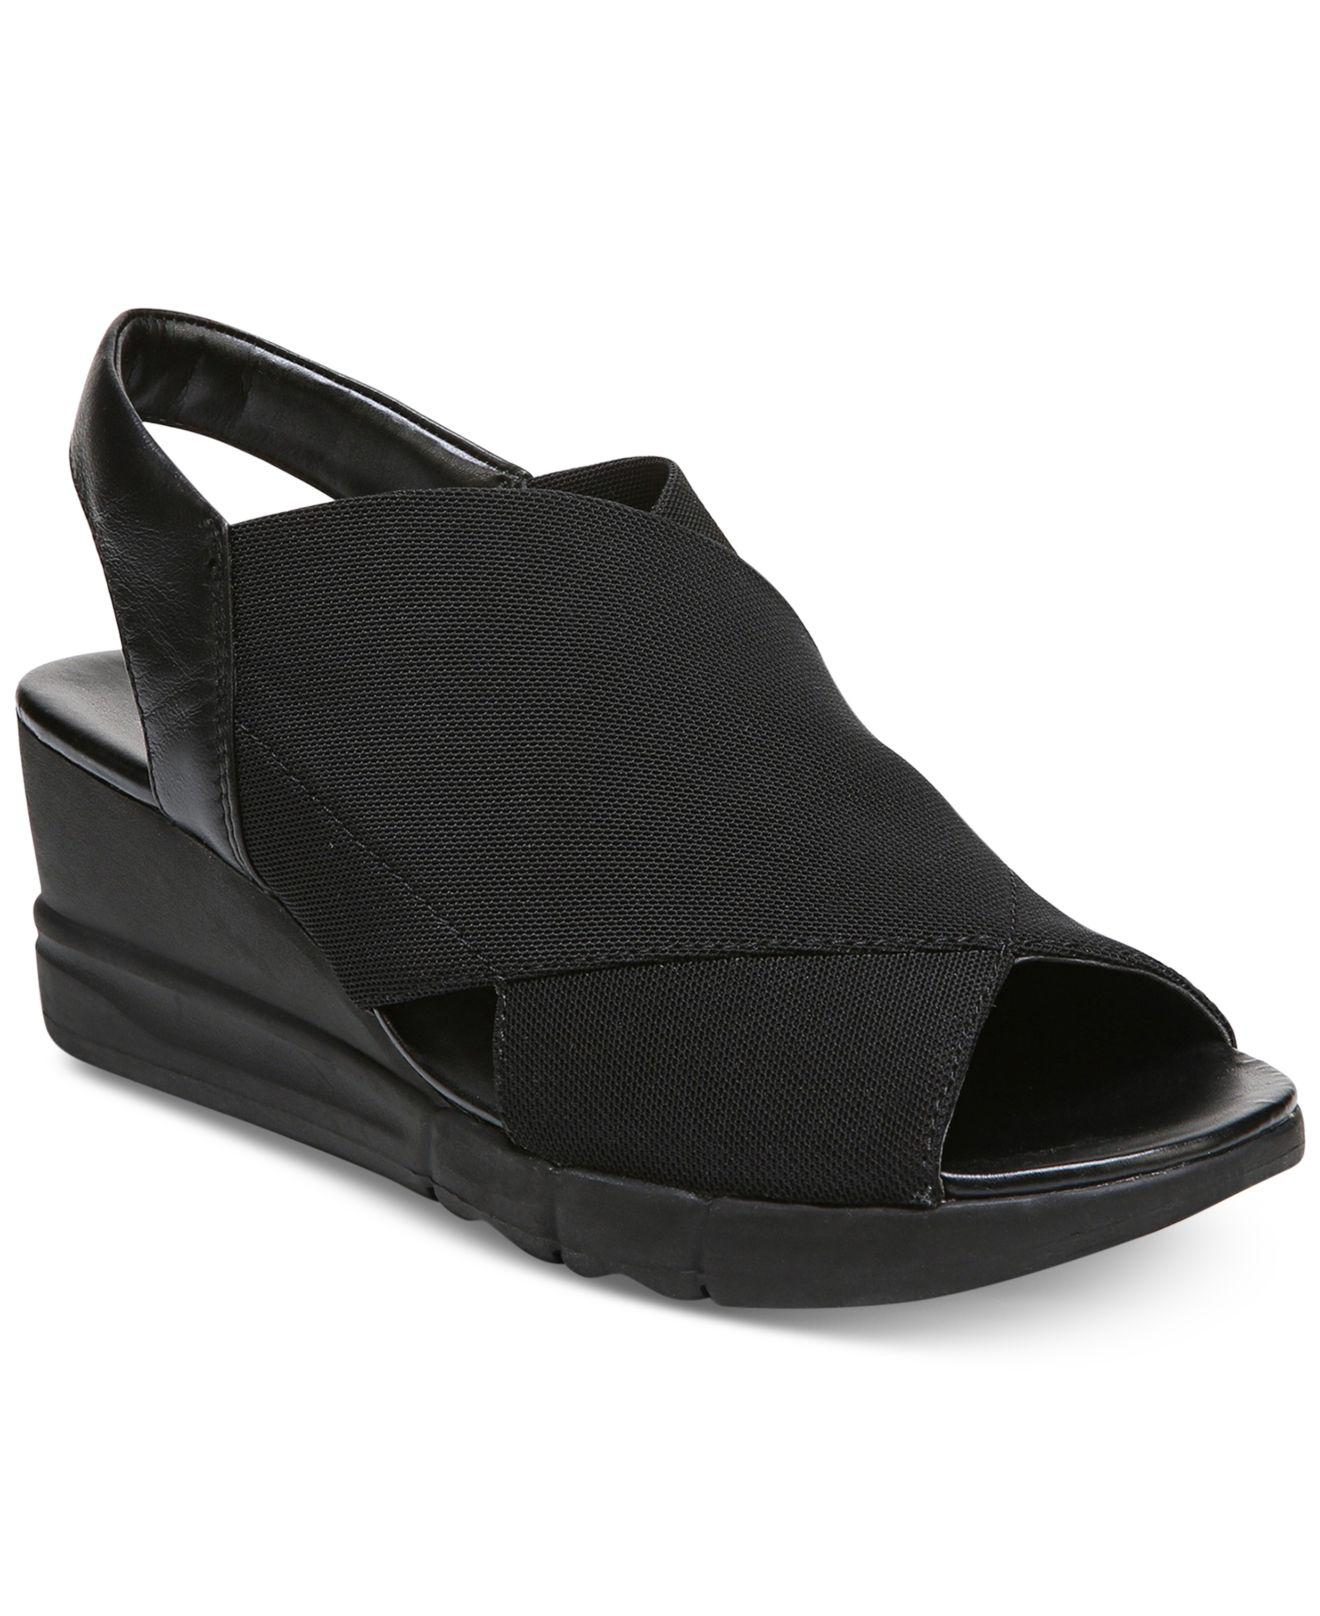 Naturalizer Isabella Sporty Wedge Sandals 6dMaY